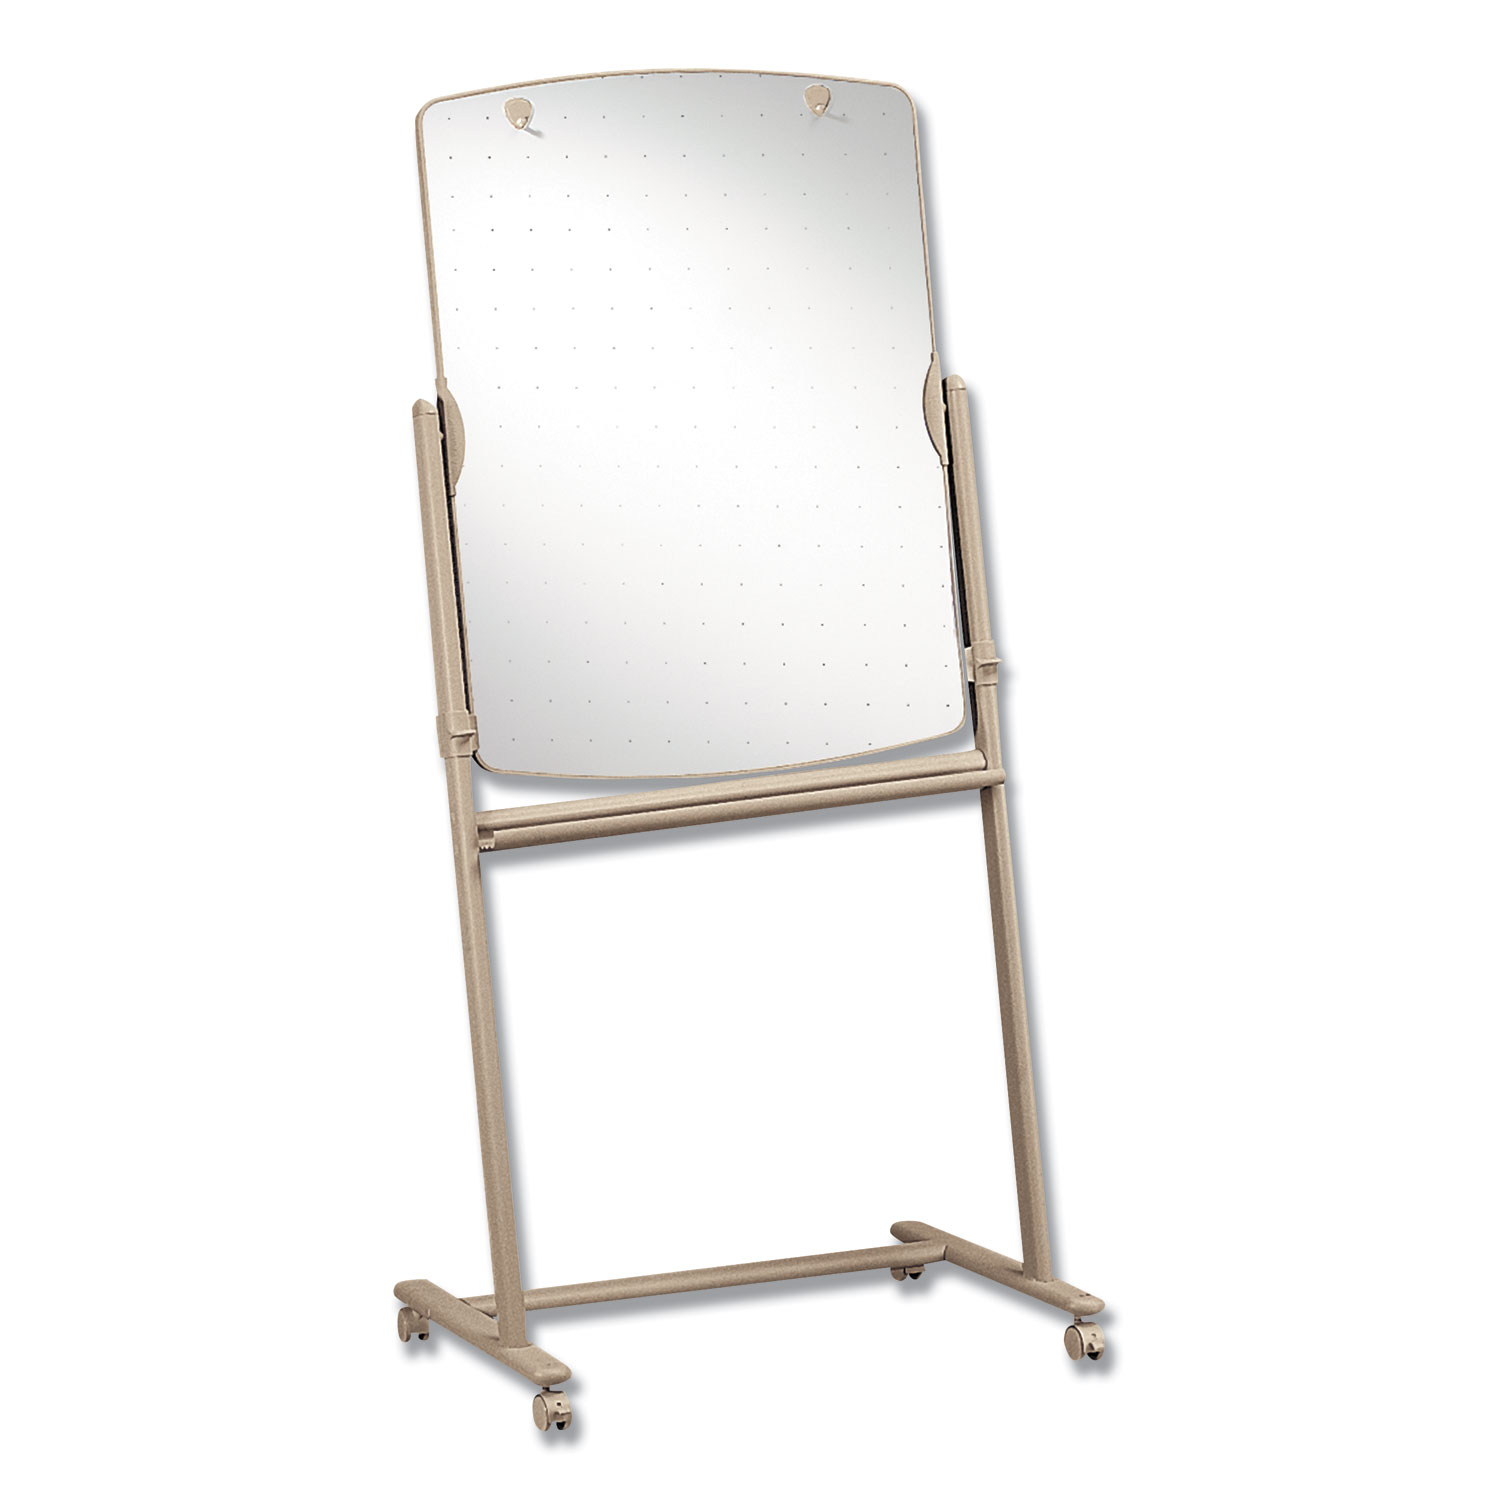 Picture of Total Erase Reversible Mobile Easel, 31 x 41, White Surface, Neutral Frame